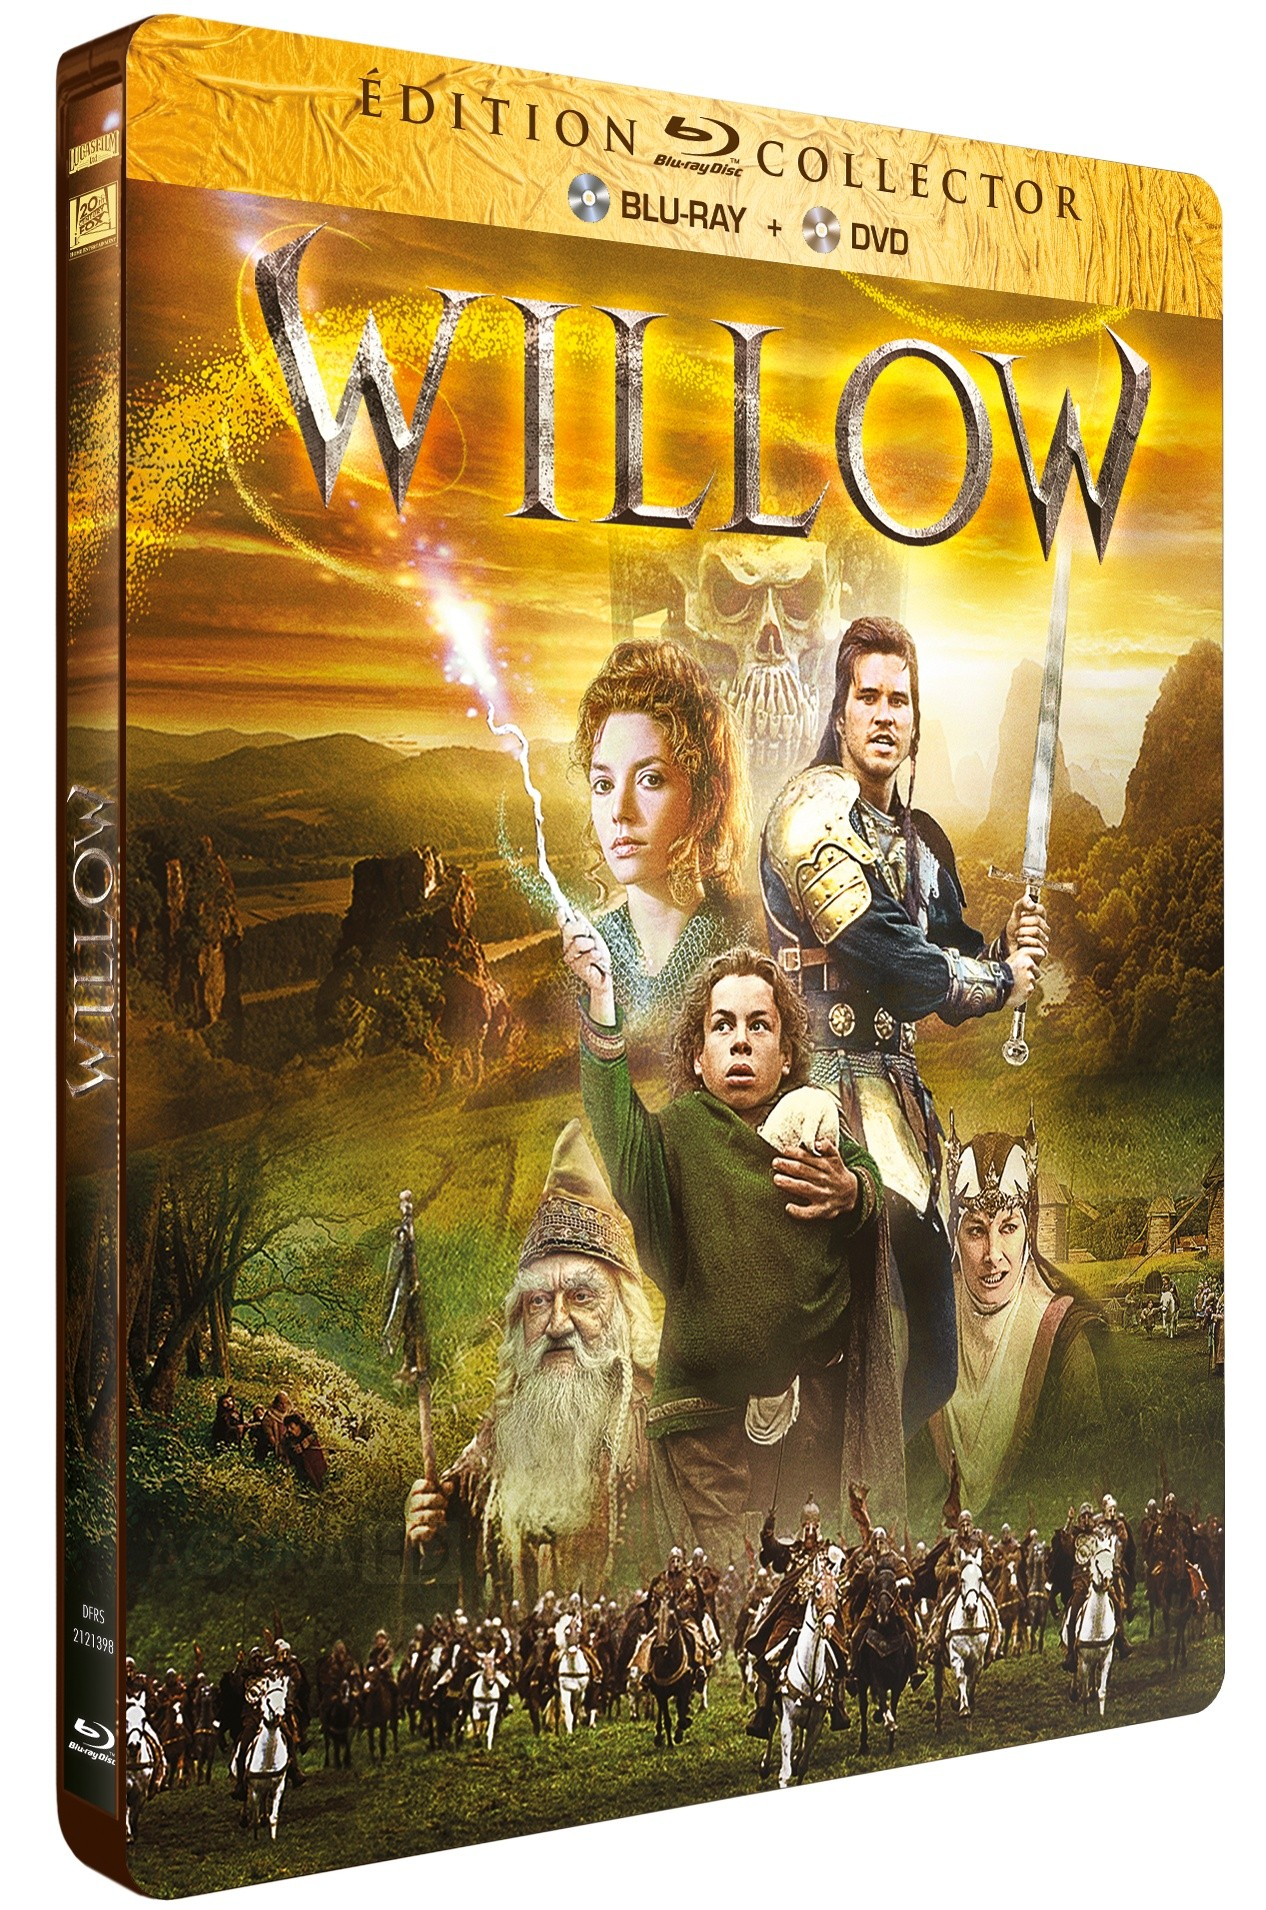 [MULTI] Willow (1988) [FRENCH] [Bluray 720p]